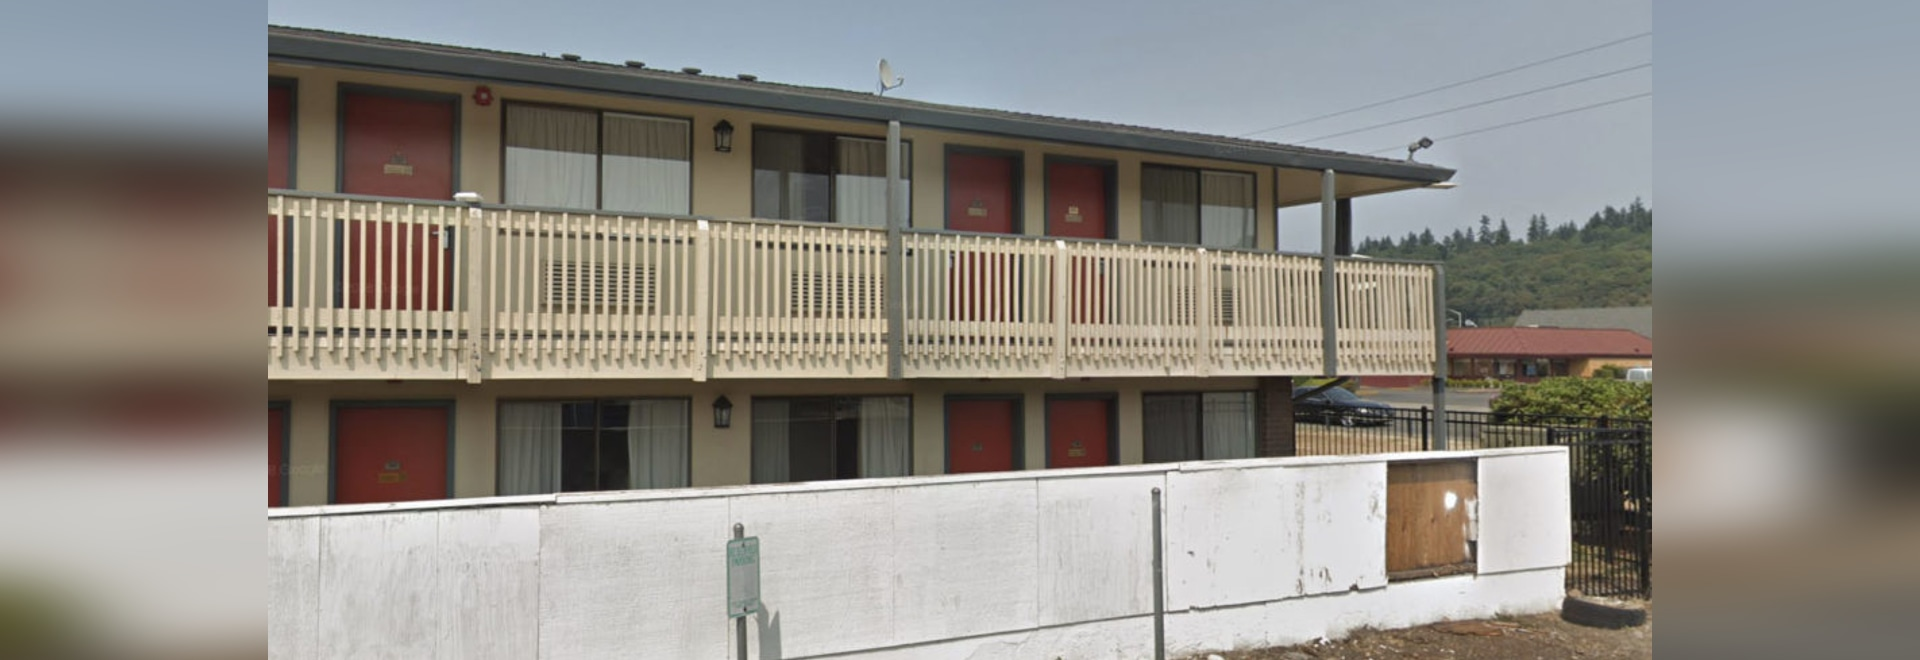 The Econo Lodge in Kent, Washington, was recently purchased for $4 million to become a makeshift quarantine facility.